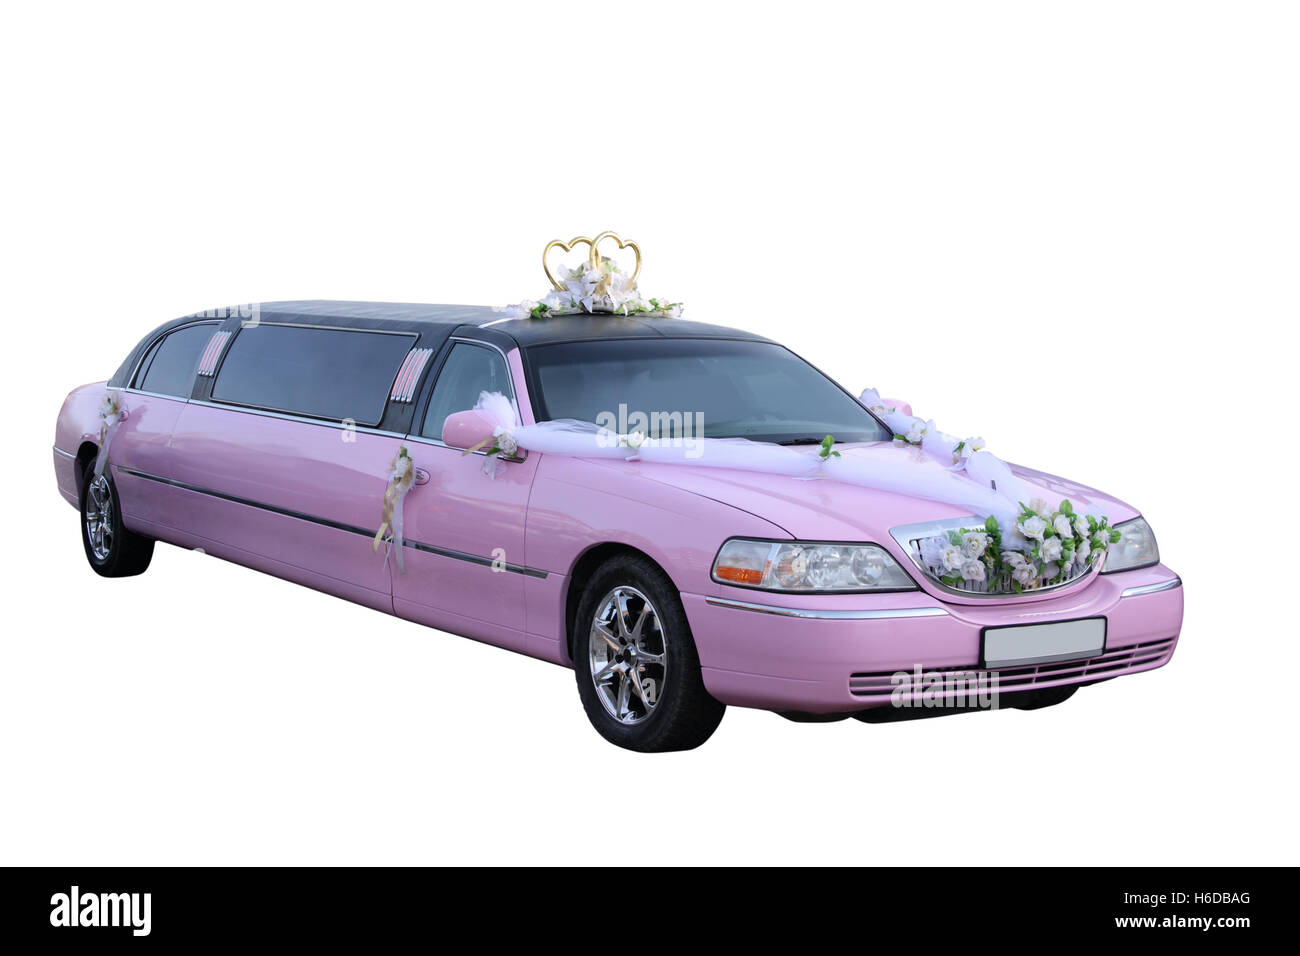 Pink wedding limousine separately on a white background Stock Photo